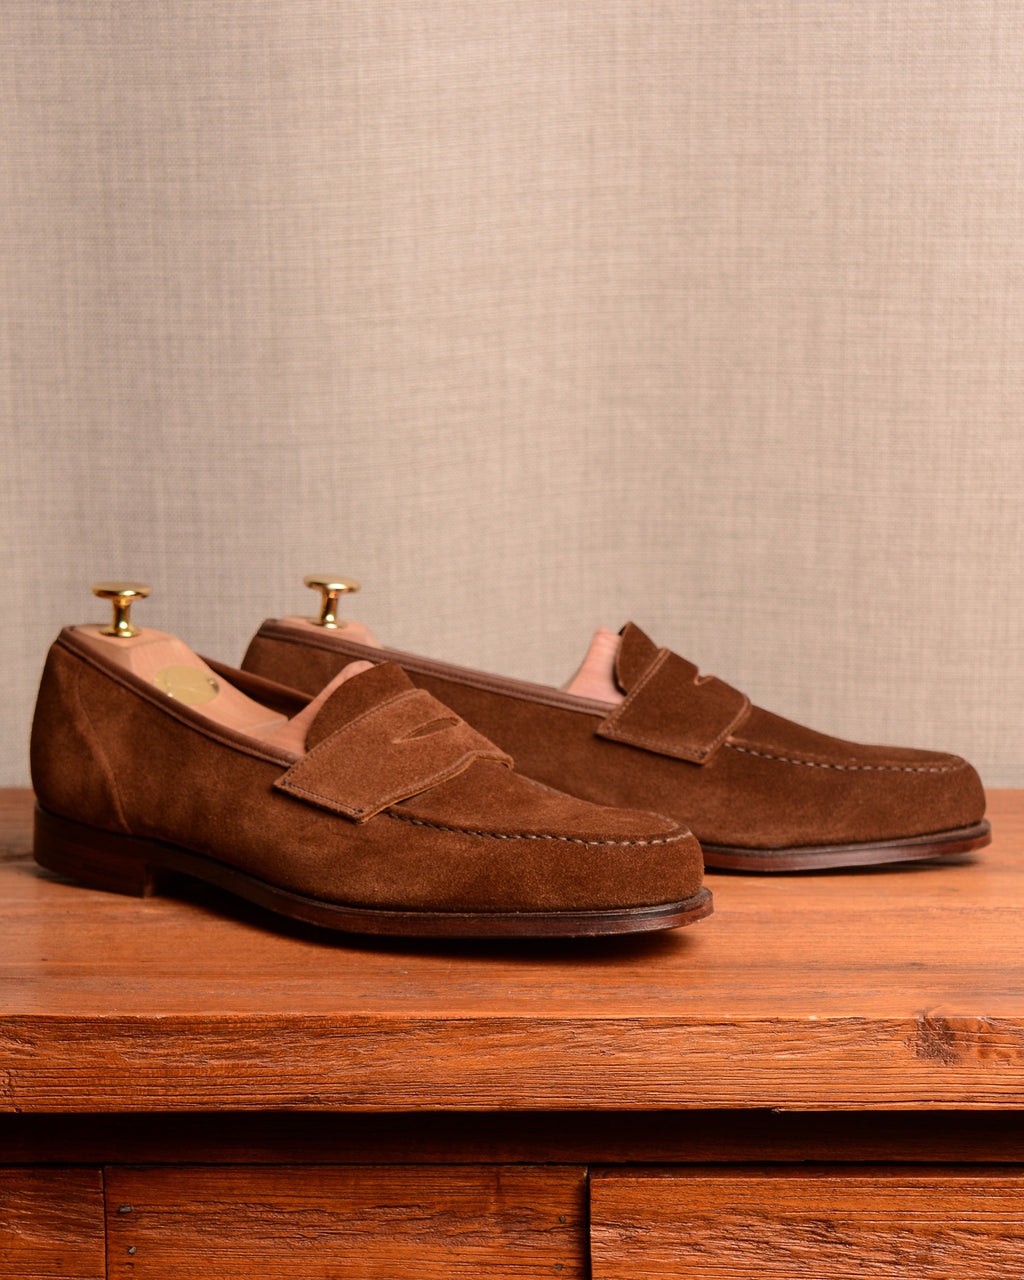 Crockett & Jones Harvard 2 - Tobacco Suede